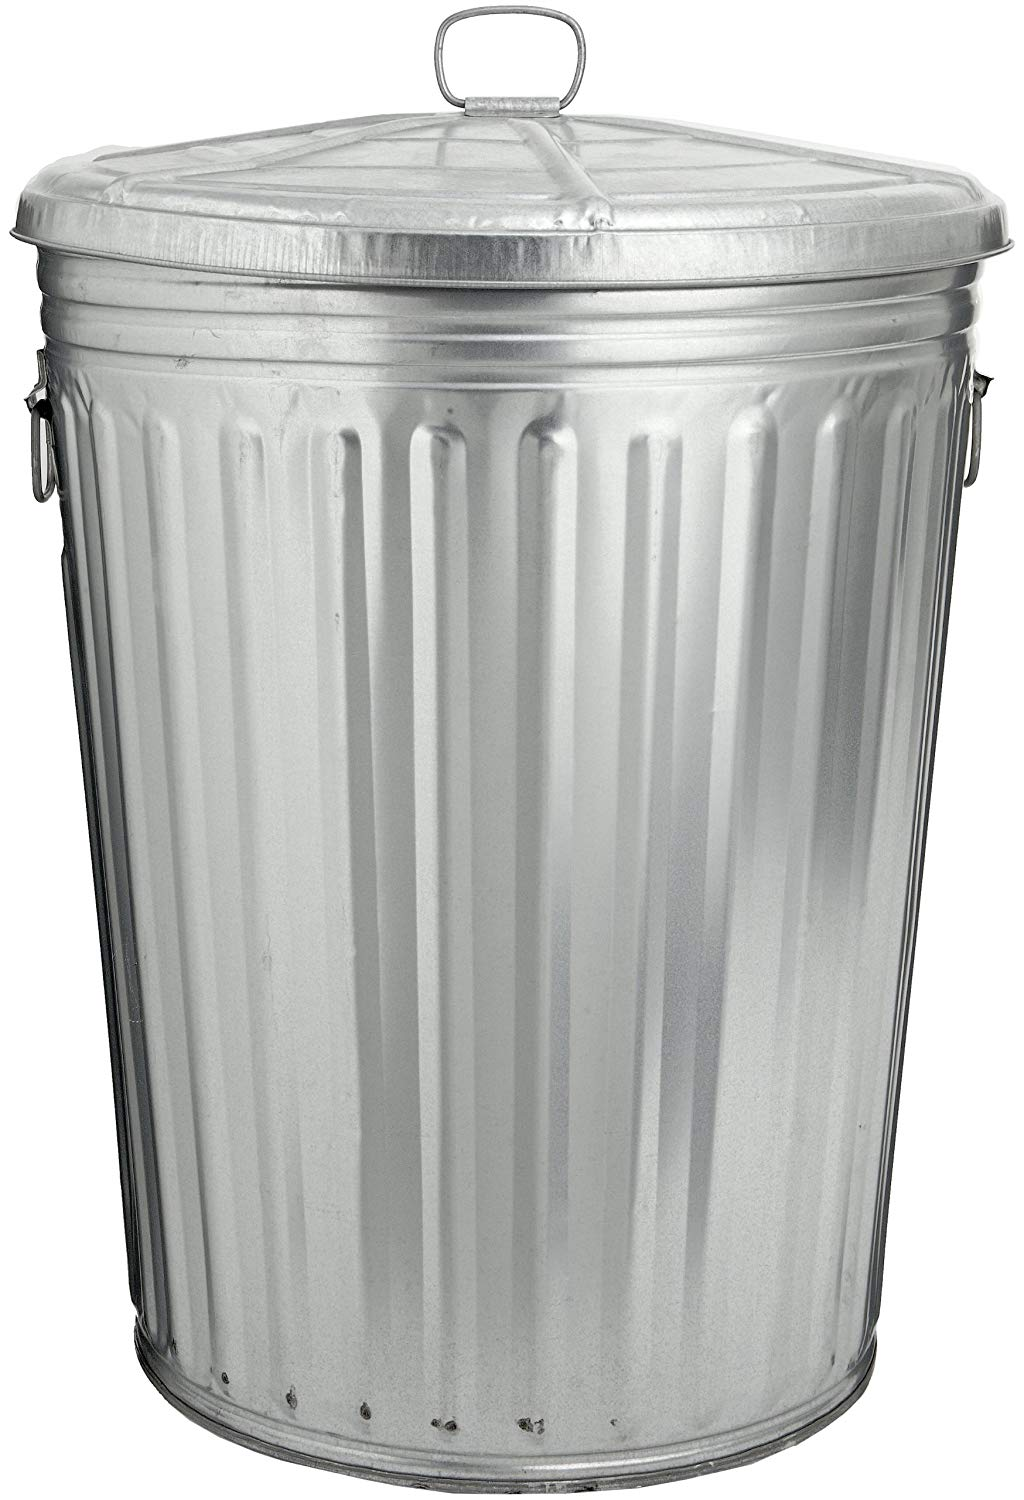 Garbage Can Galvanized (30 gallon)